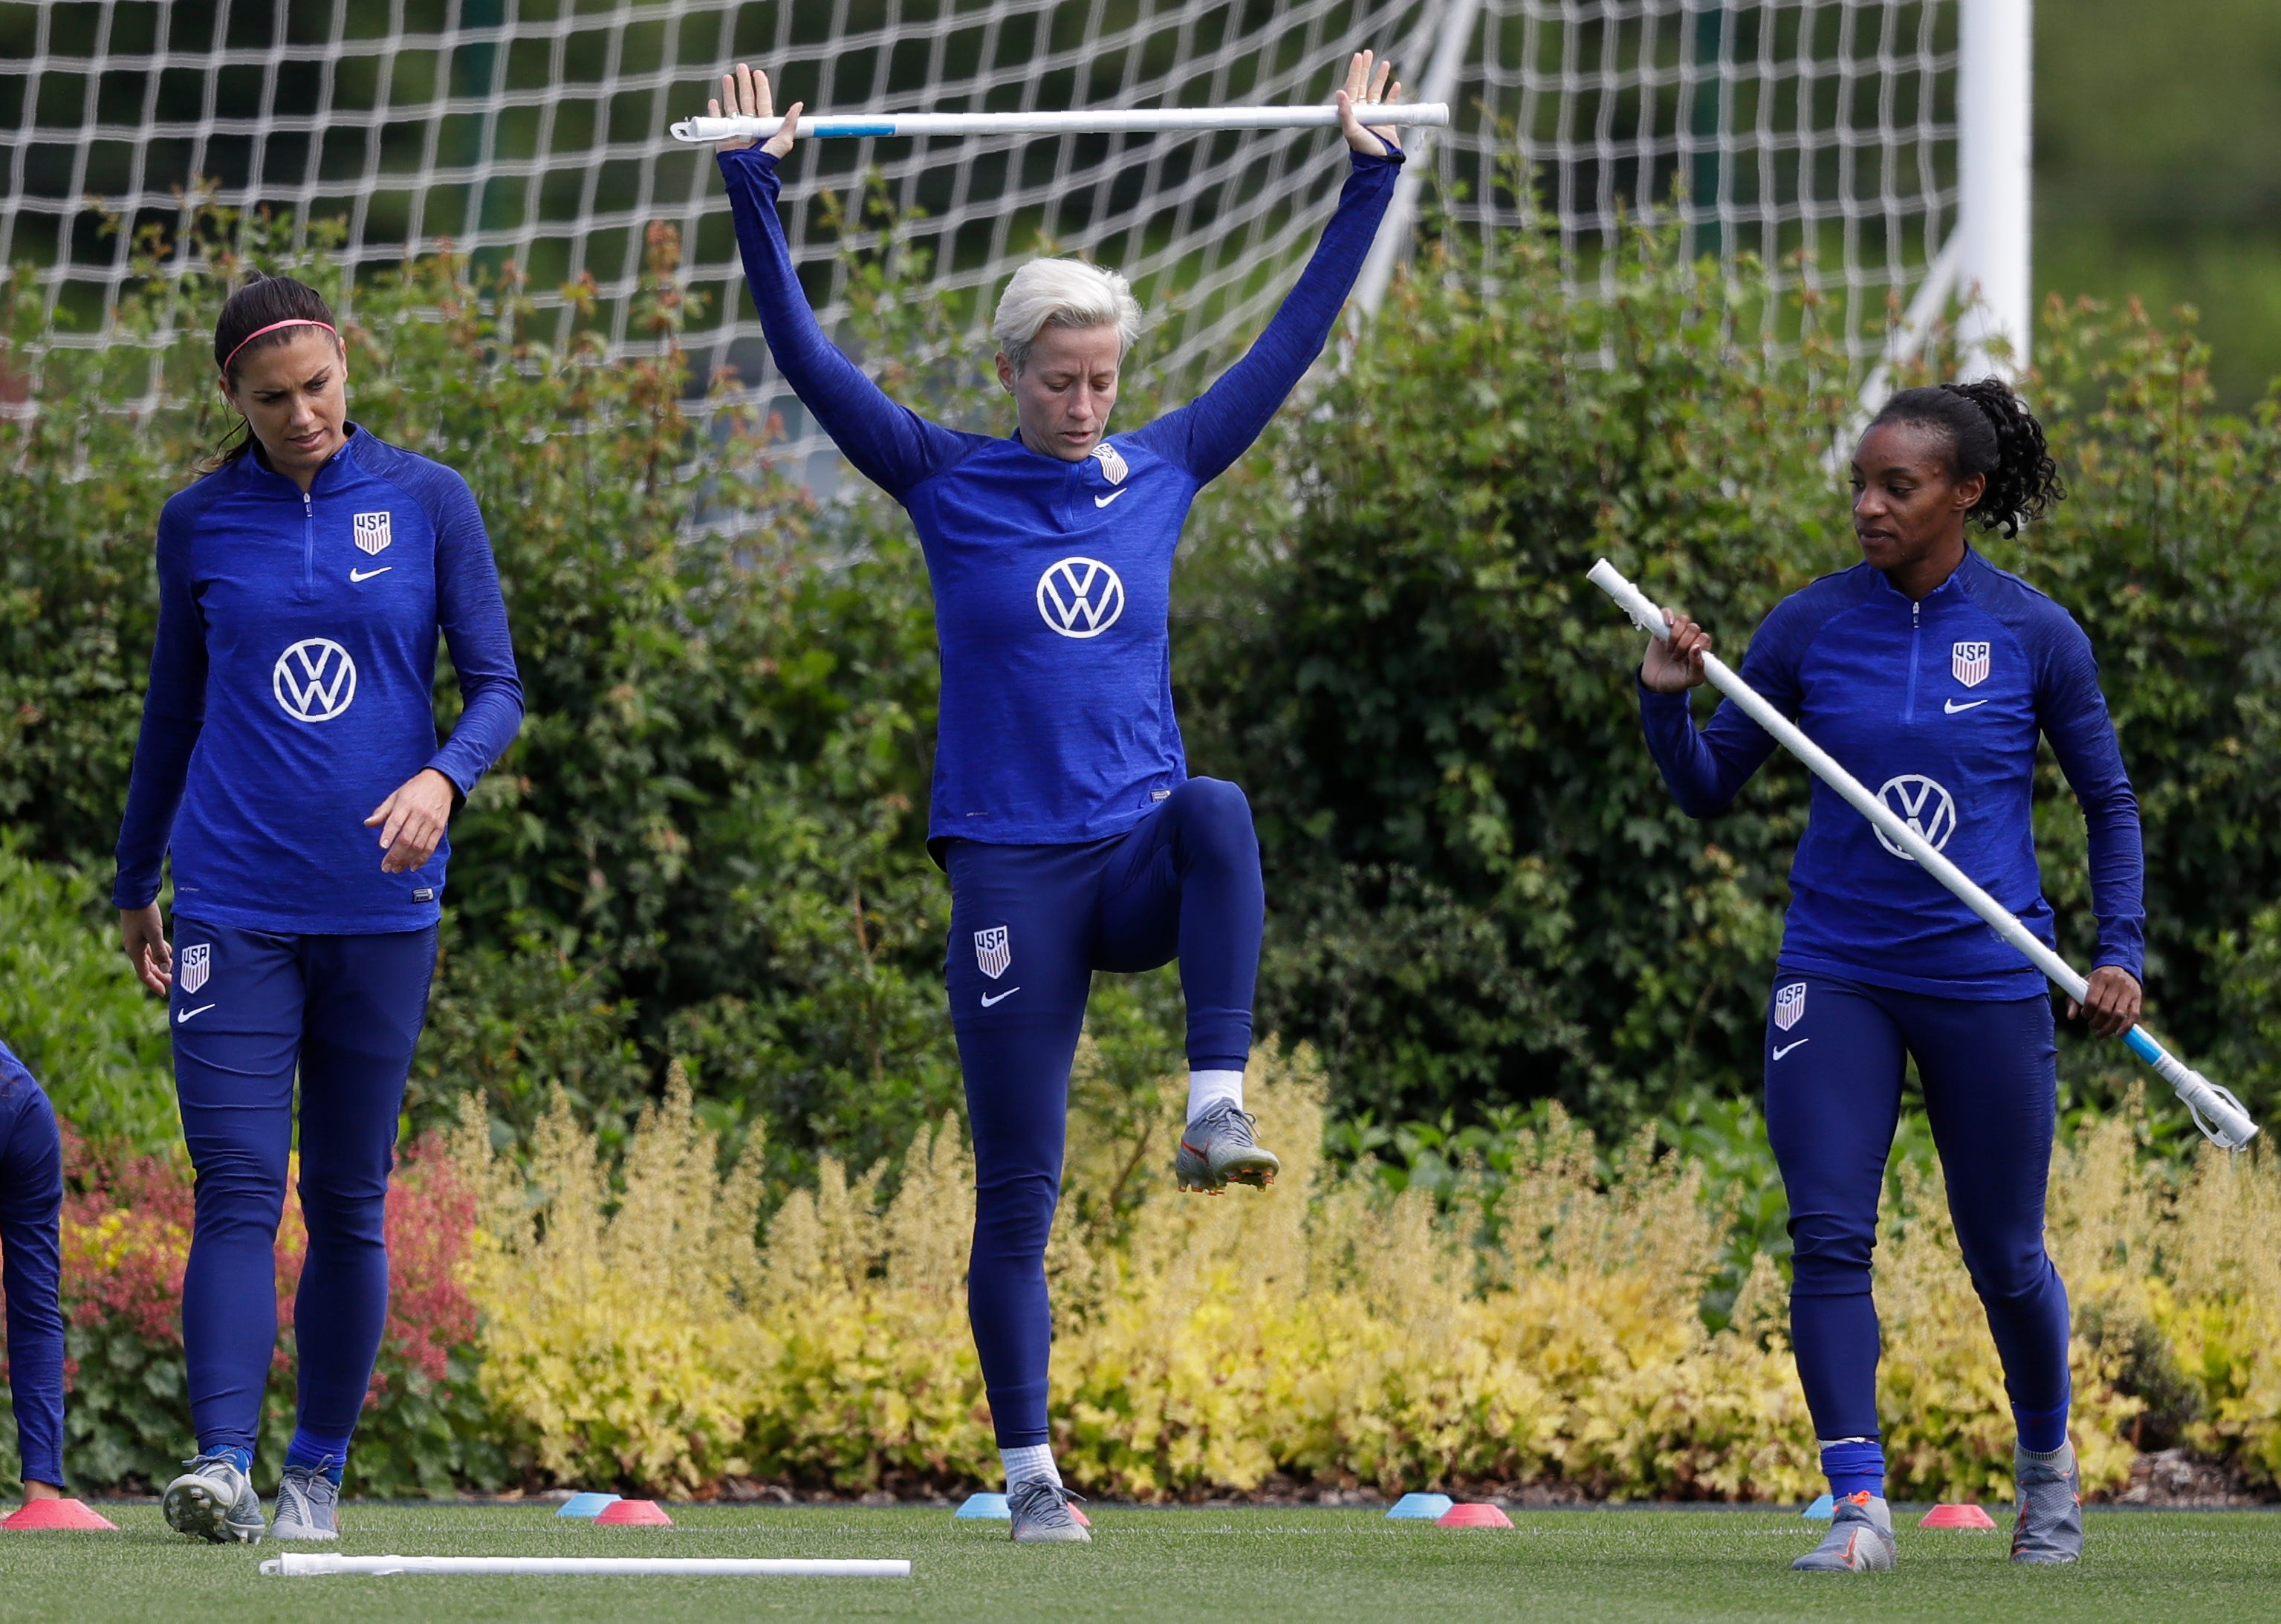 US player Megan Rapinoe, center, stretches with Crystal Dunn, right, and Alex Morgan, left, during a US womens soccer team training session at the Tottenham Hotspur training centre in London, Thursday, June 6, 2019. The Women's World Cup starts in France on June 7. (AP Photo/Kirsty Wigglesworth)